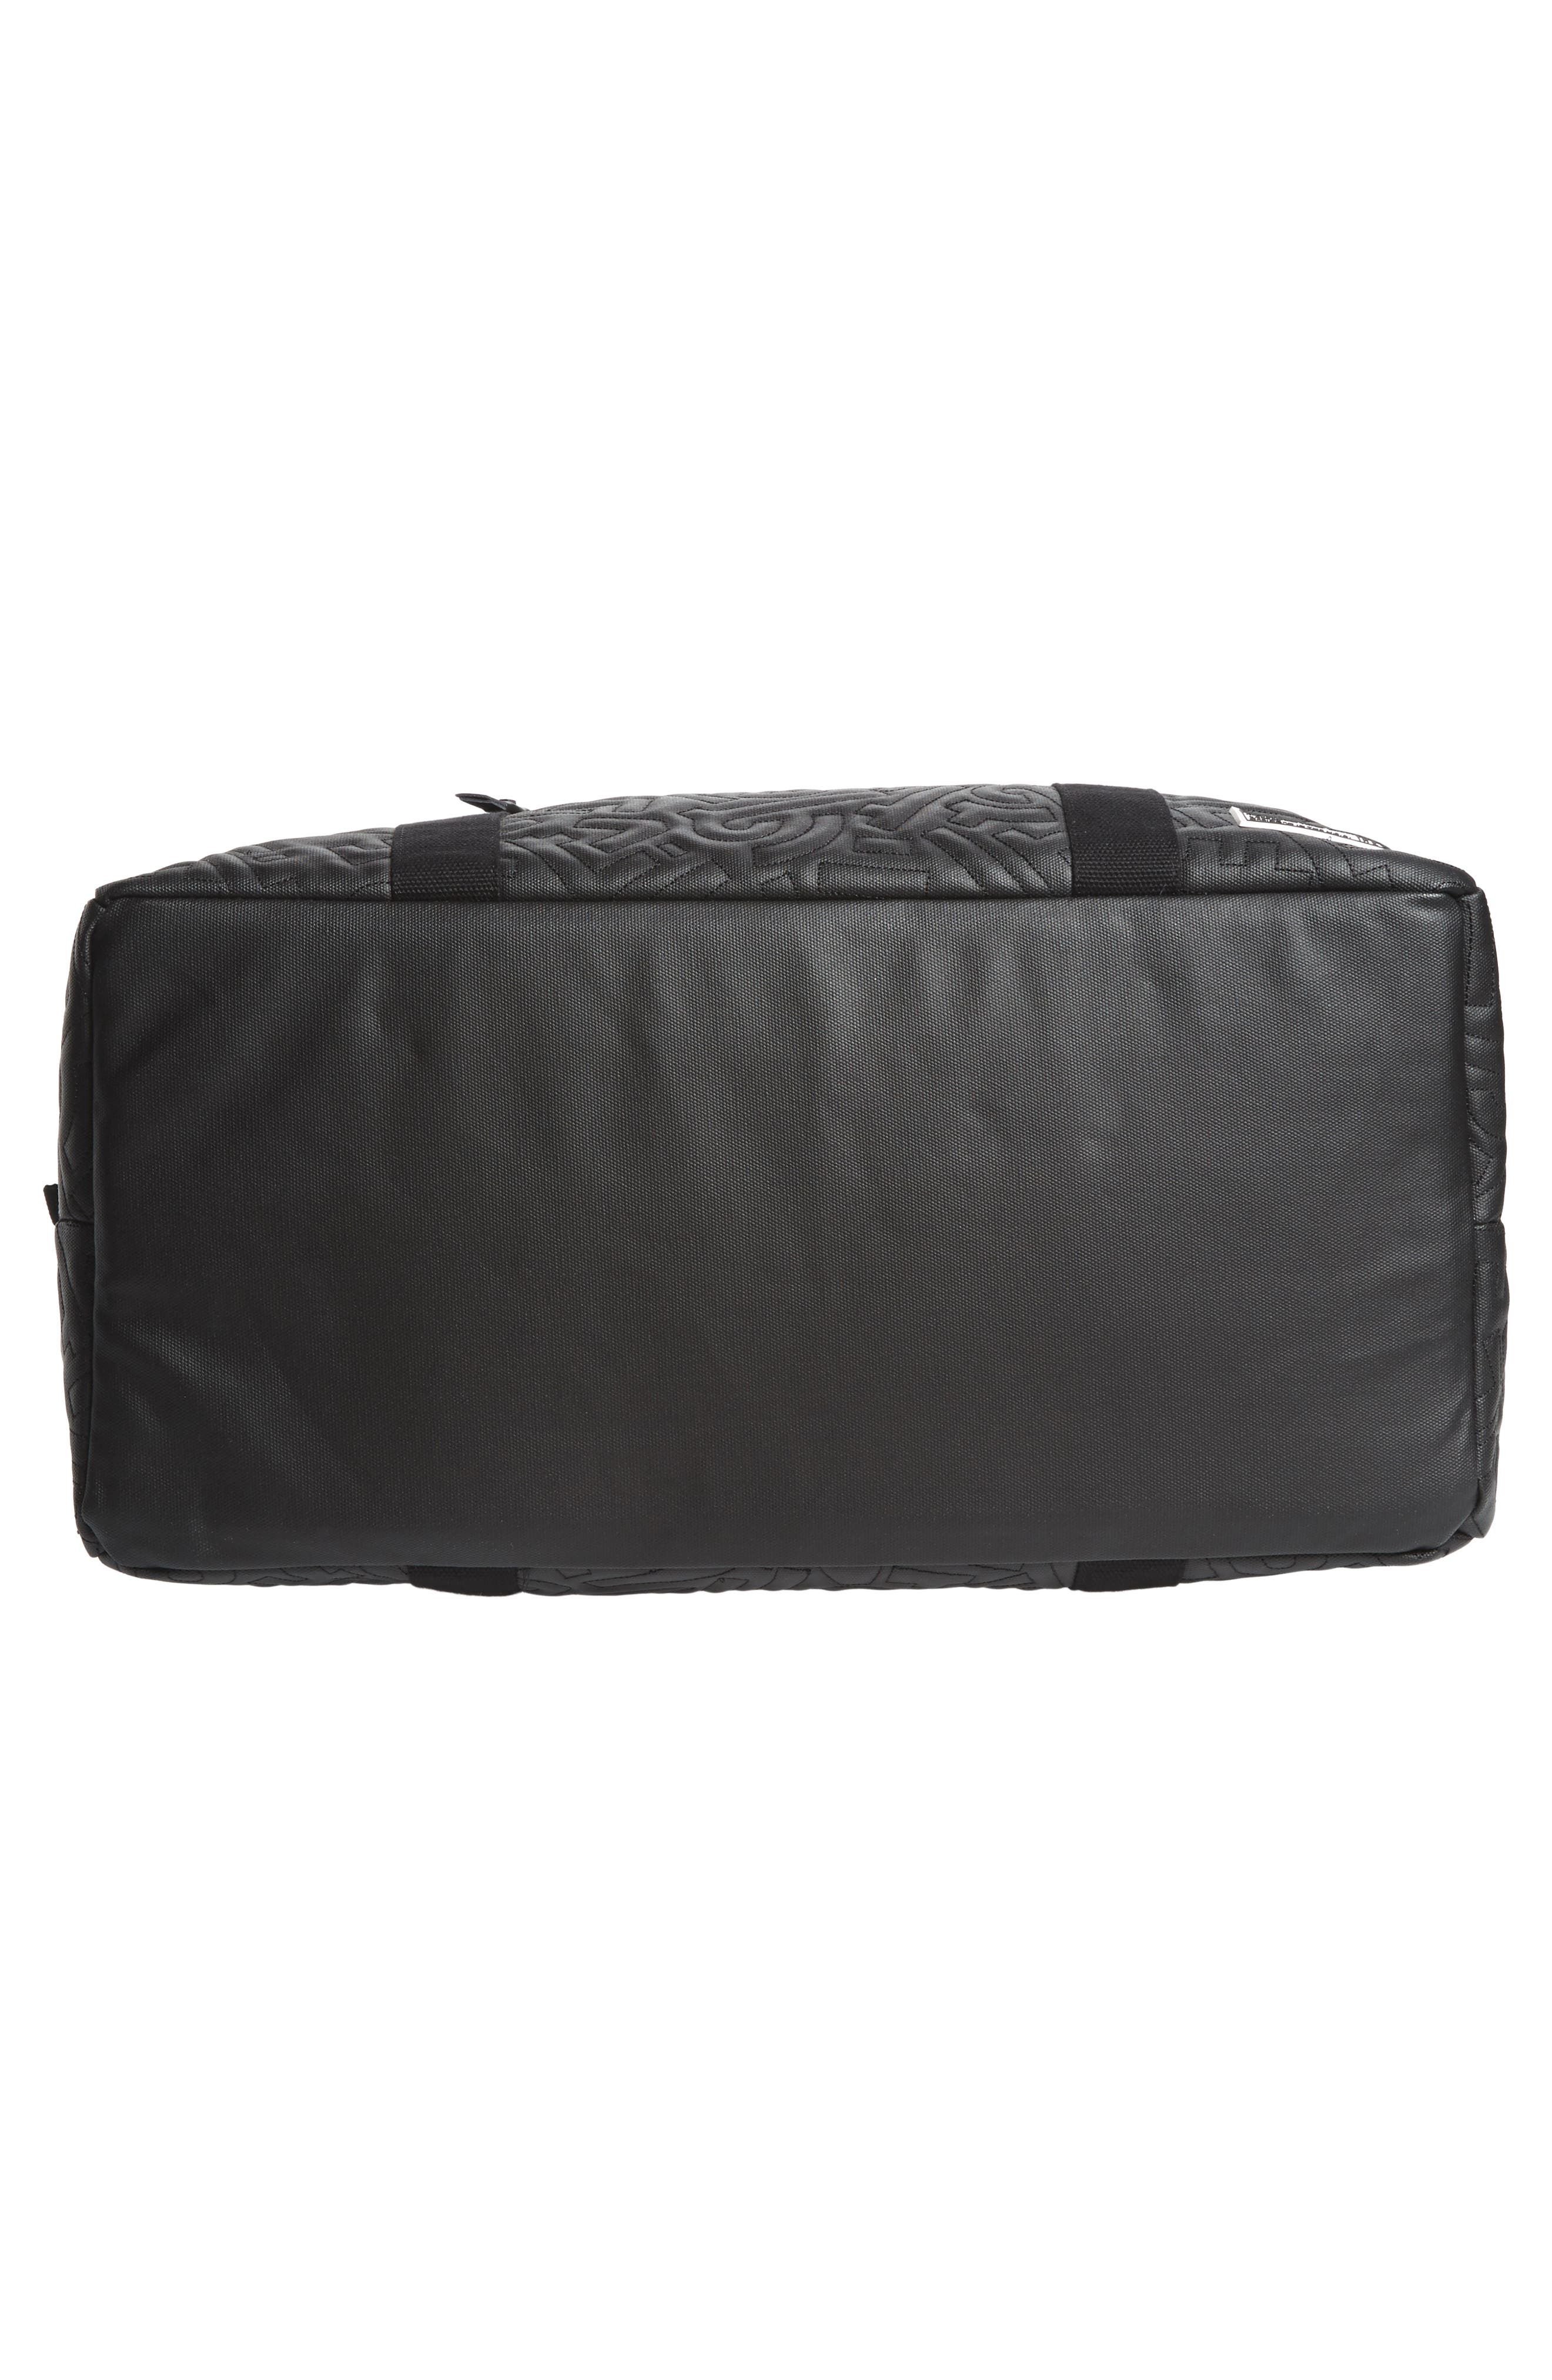 x Aaron De La Cruz Drifter Duffel Bag,                             Alternate thumbnail 6, color,                             Black Quilt